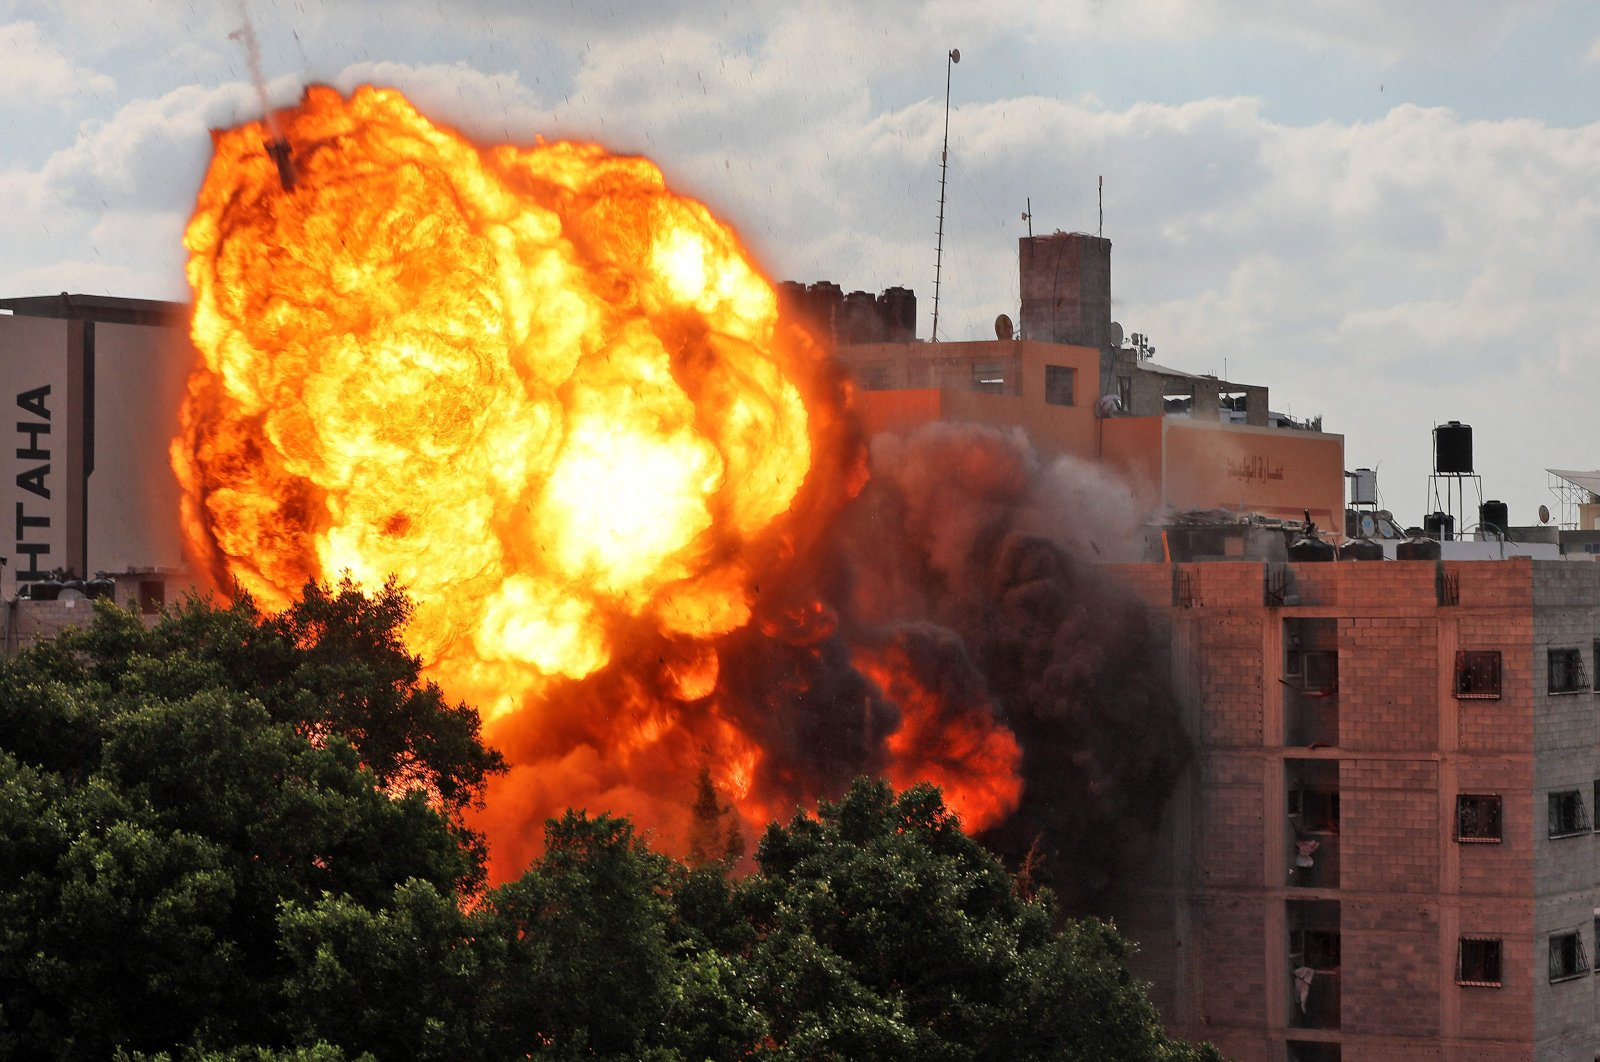 A ball of fire engulfs the Al-Walid building that was destroyed in an Israeli airstrike on Gaza city early in the morning, May 13, 2021. (AFP Photo)